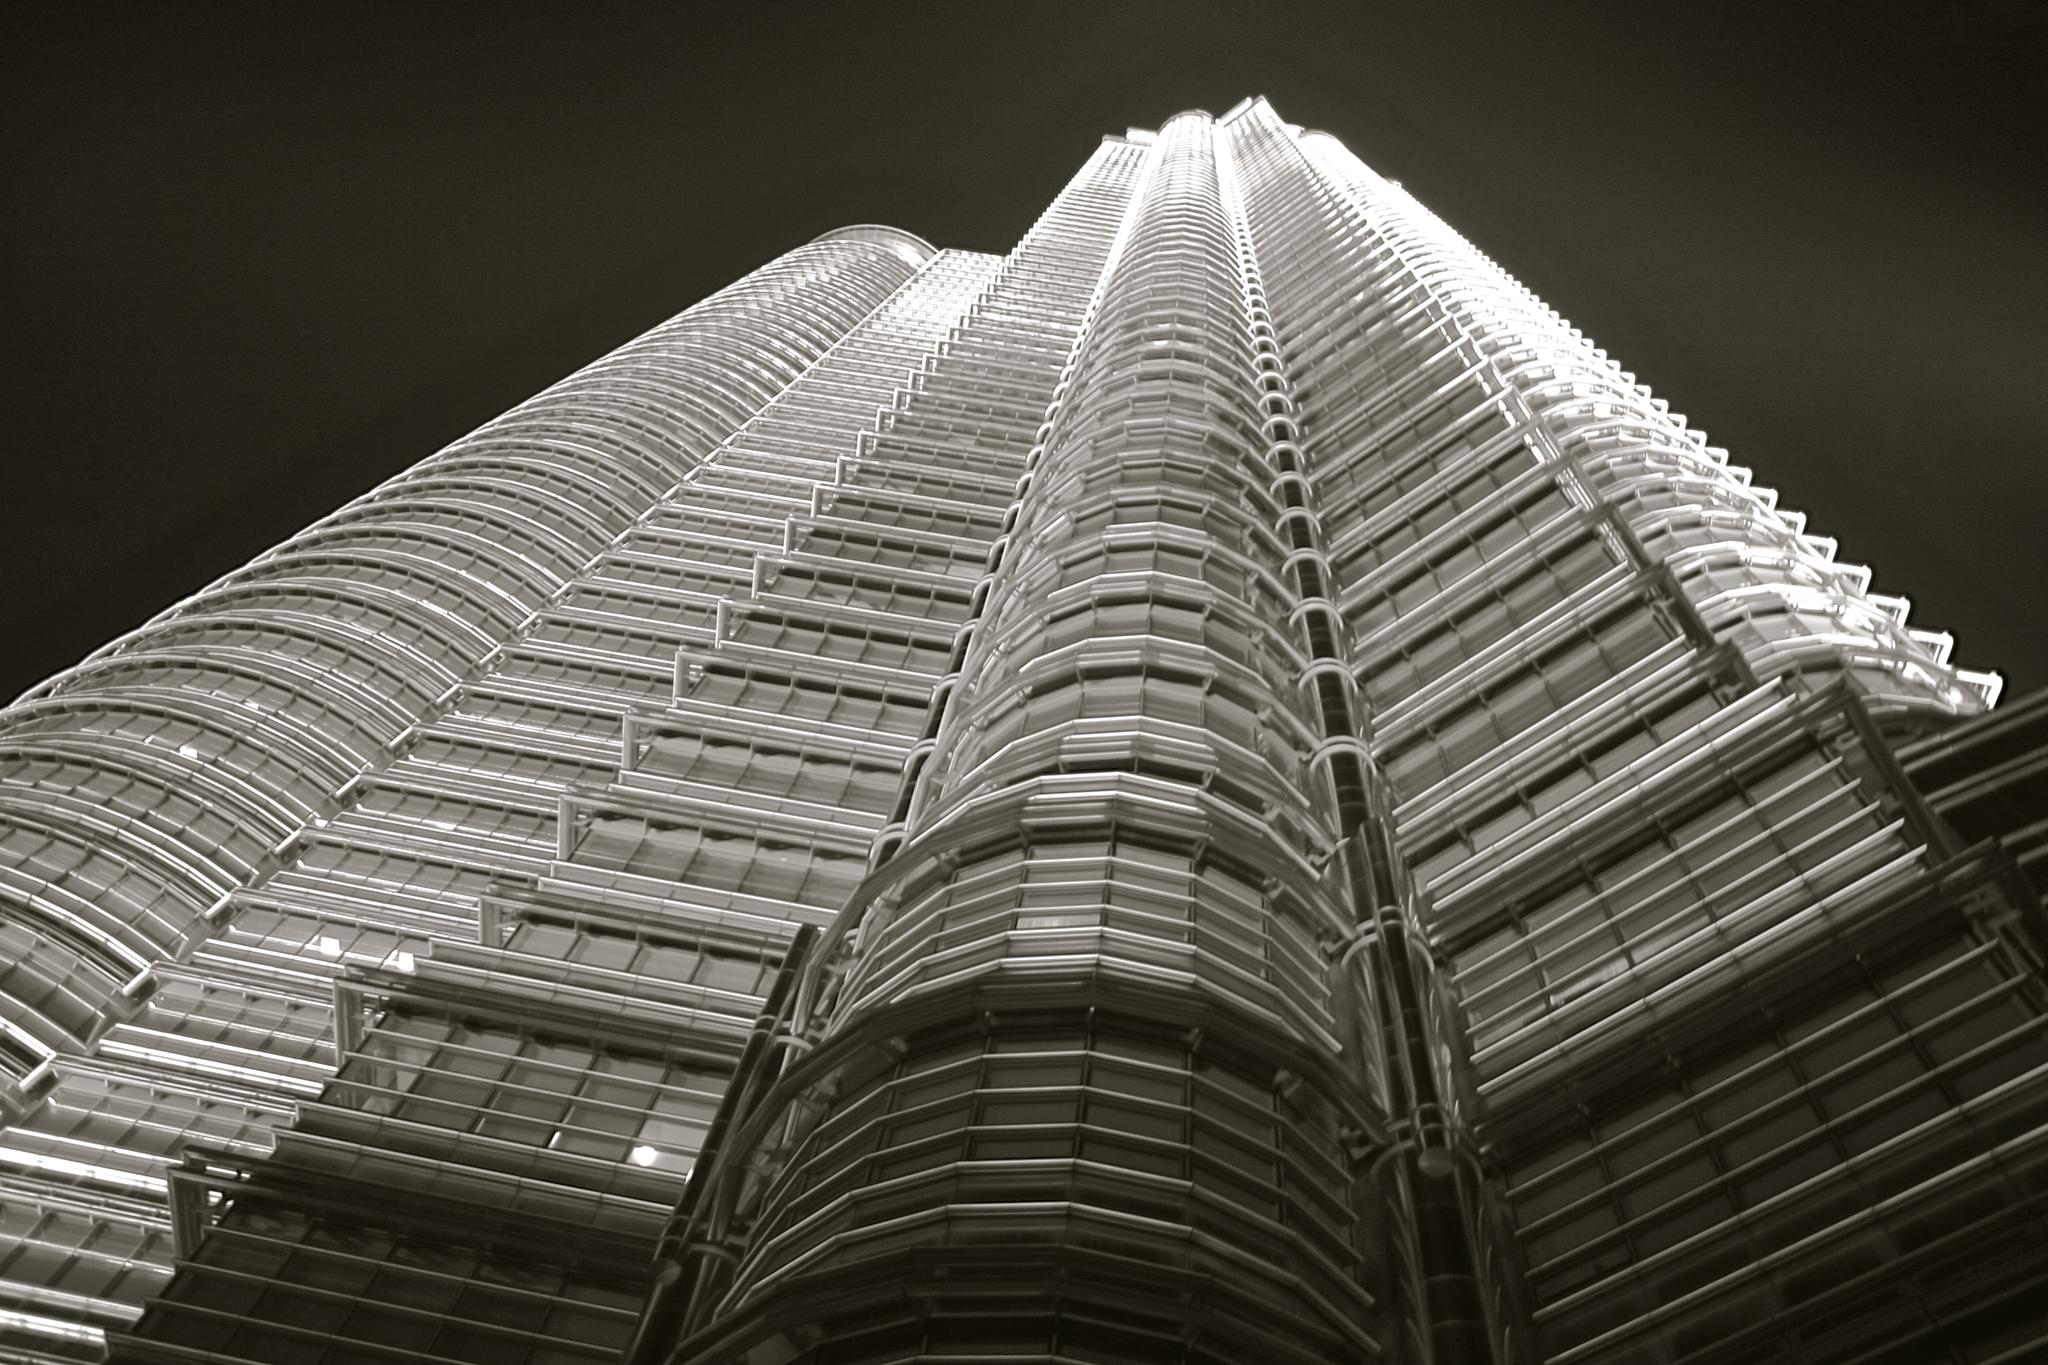 Petronas by CareyCarter